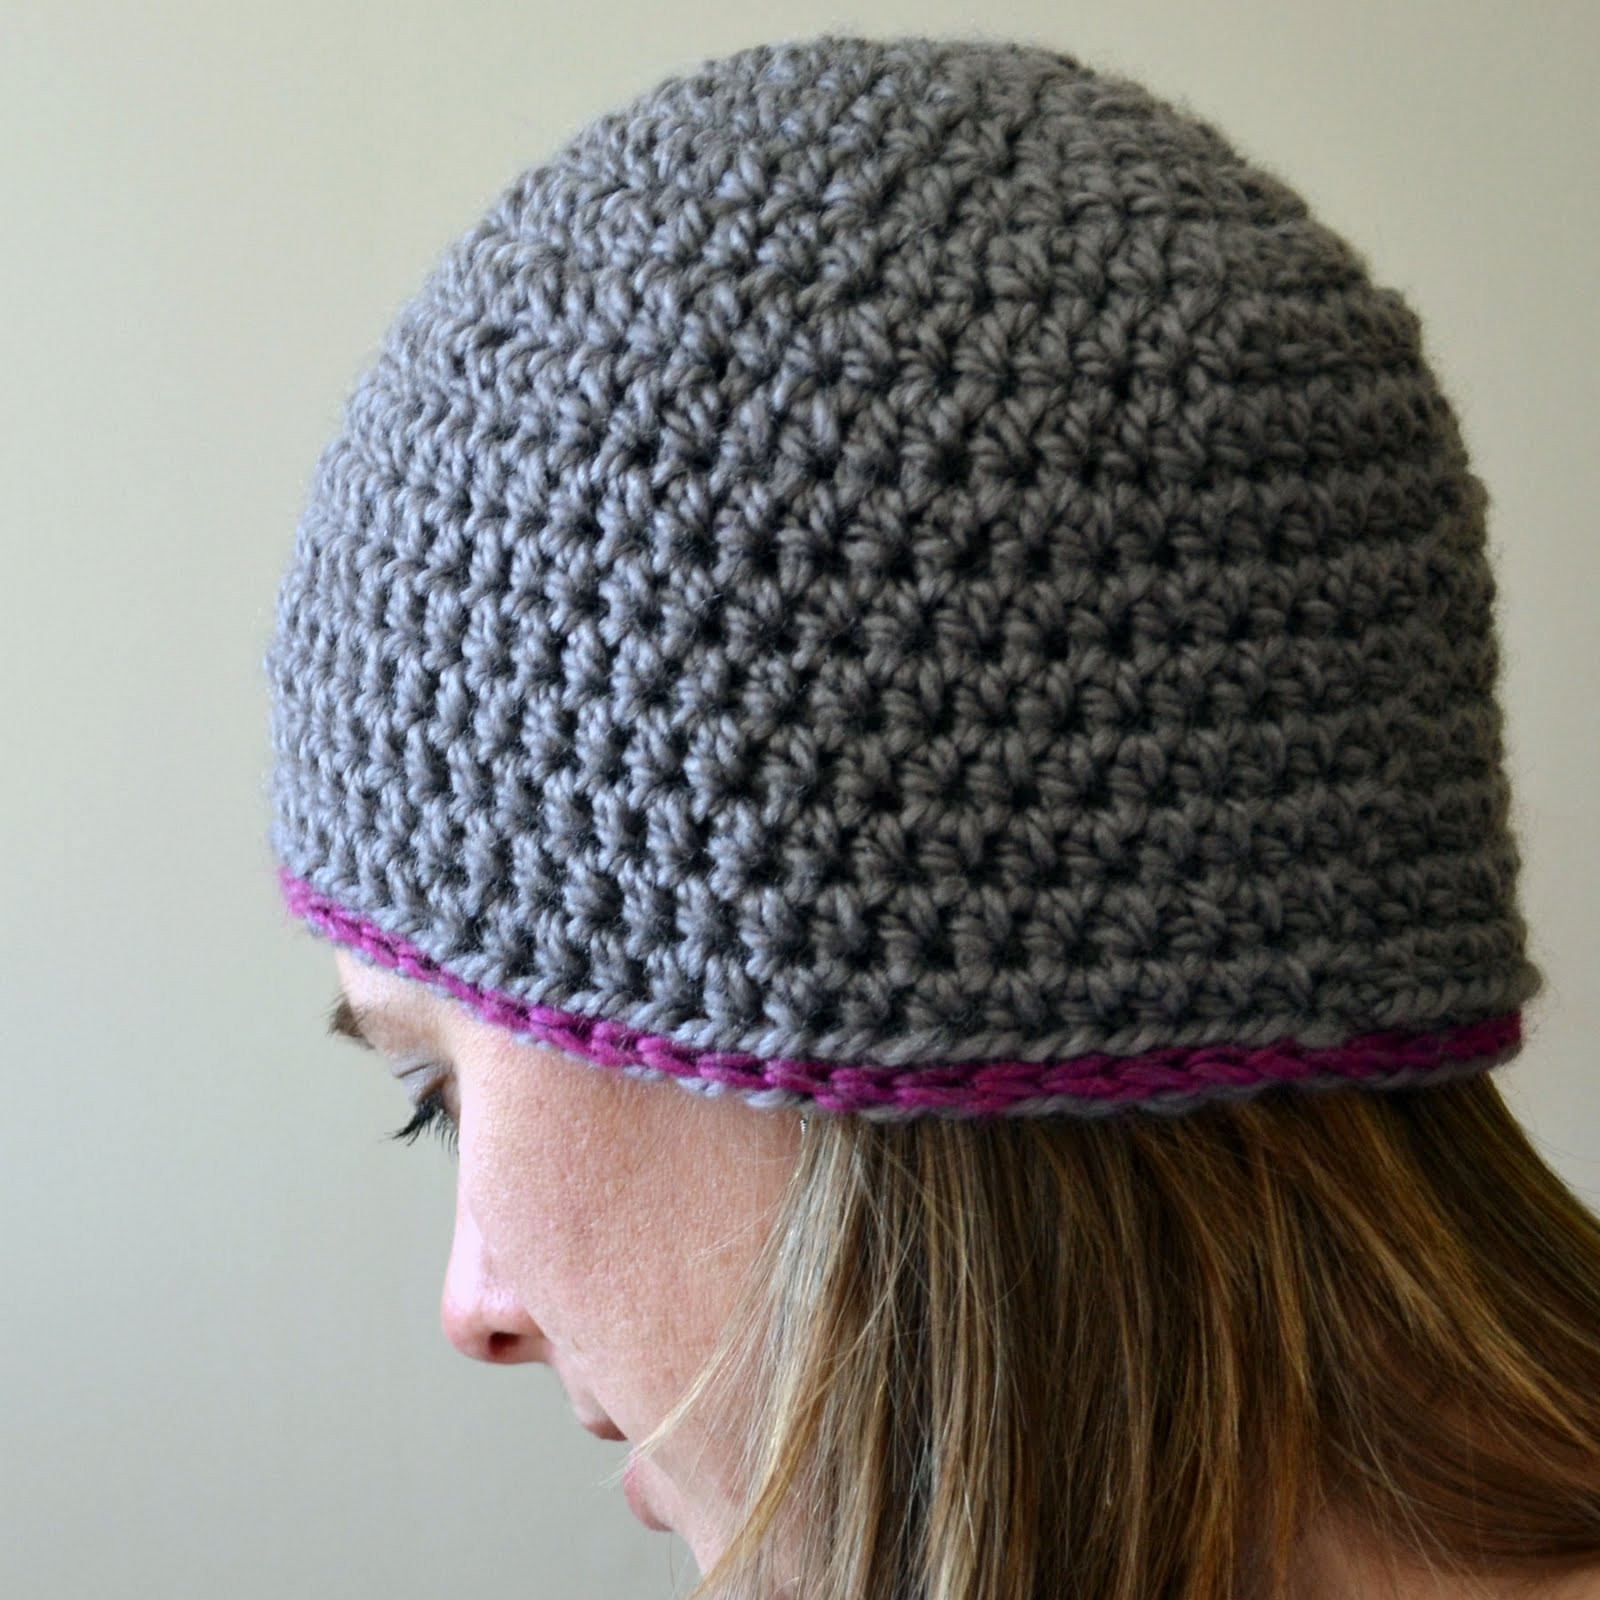 New Crochet Patterns for Hats Free Easy Crochet and Knit Simple Beanie Crochet Pattern Of Innovative 50 Ideas Simple Beanie Crochet Pattern